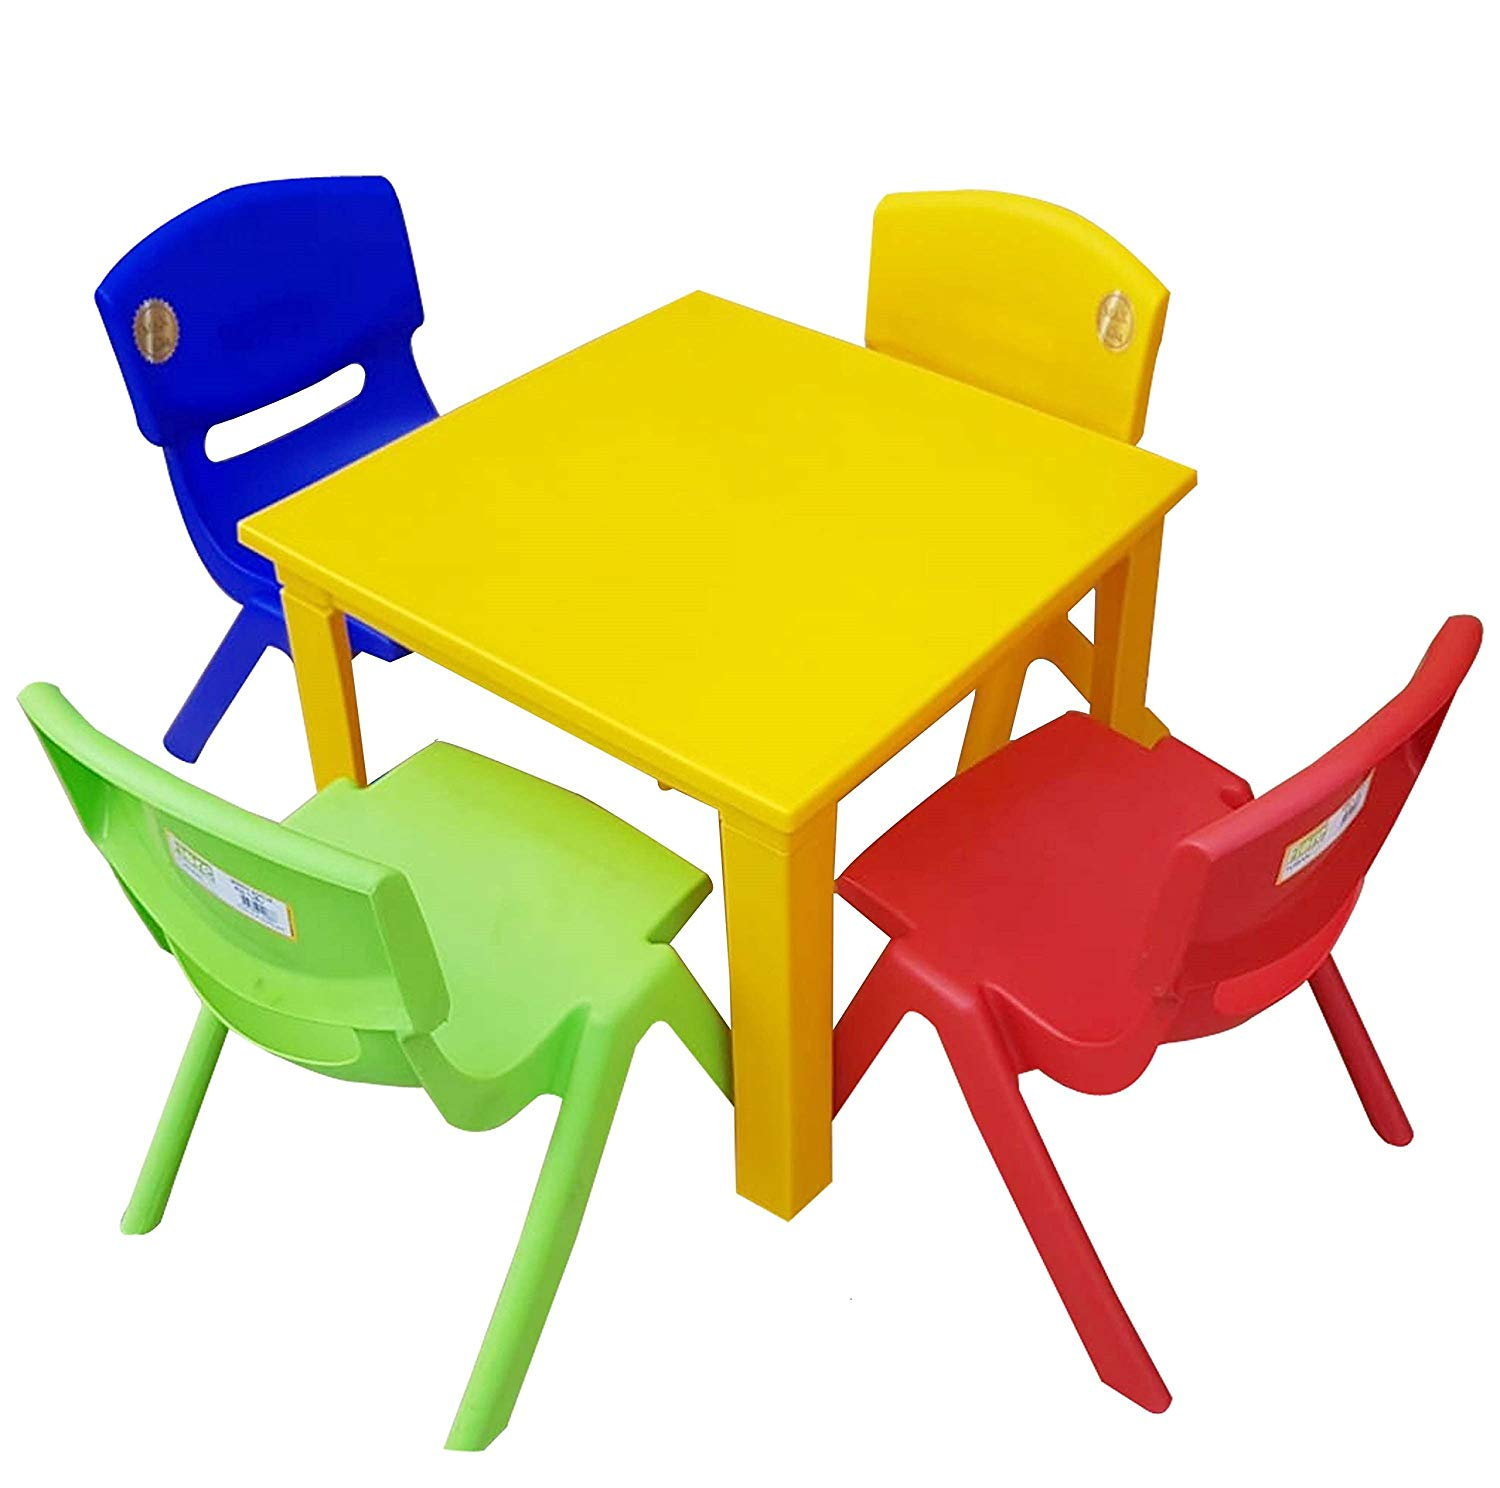 kids children plastic table strong folding high quality outdoor side yellow suitable for blue holiday presents toddler drum stool round dining with leaf industrial cart coffee